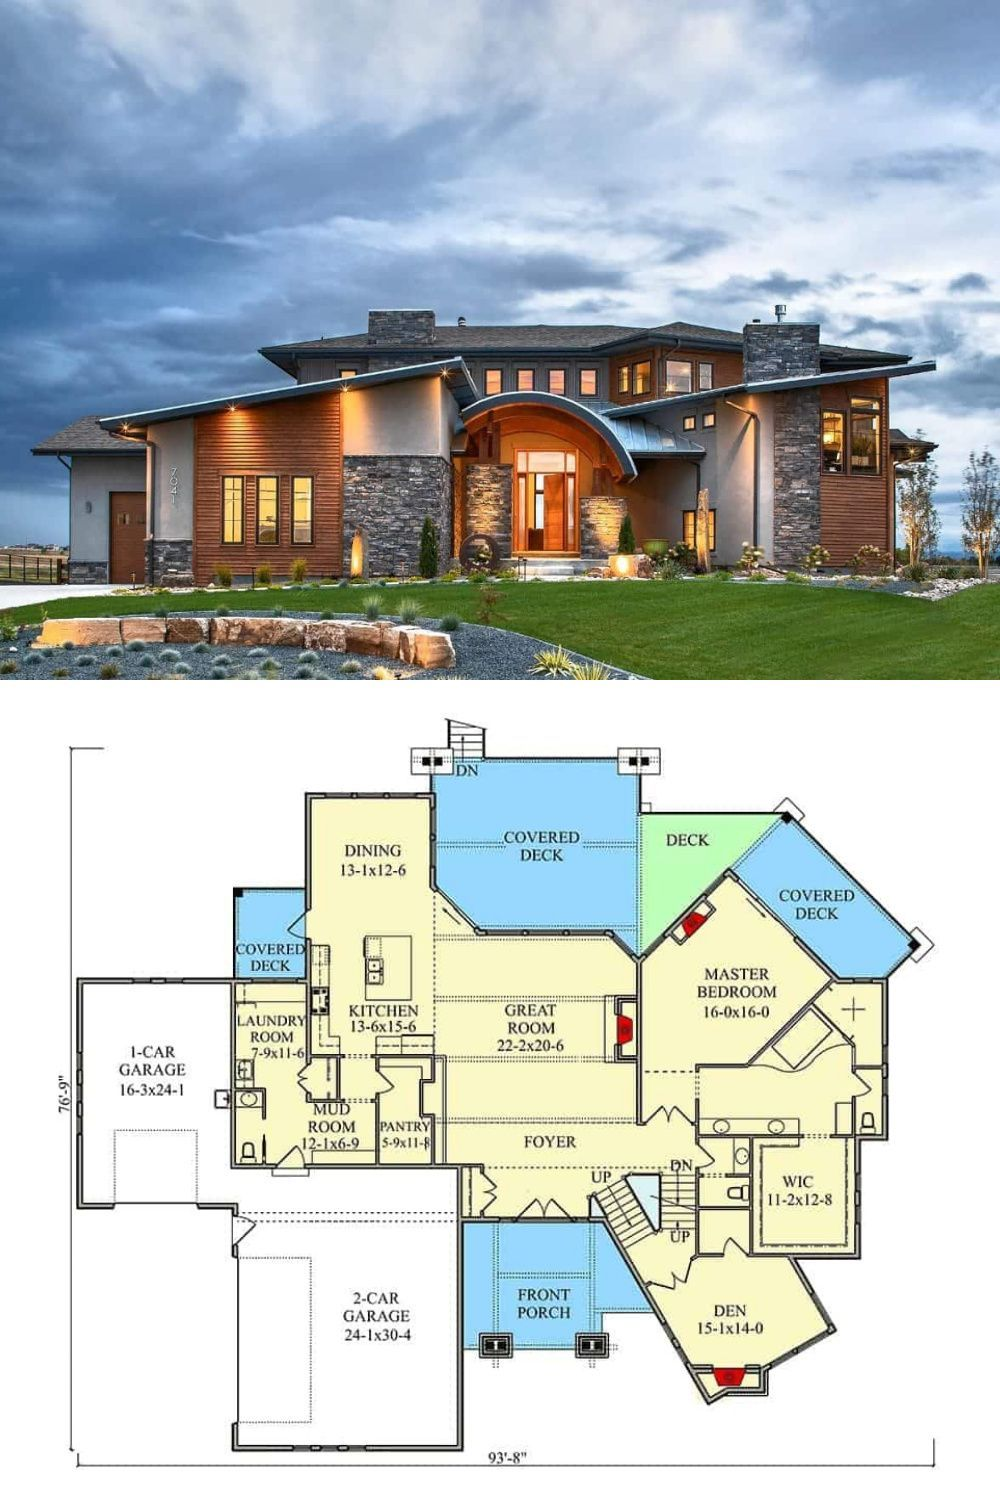 5 Bedroom Two Story Contemporary Home With A Bar Floor Plan Contemporary House Plans Contemporary House House Plans